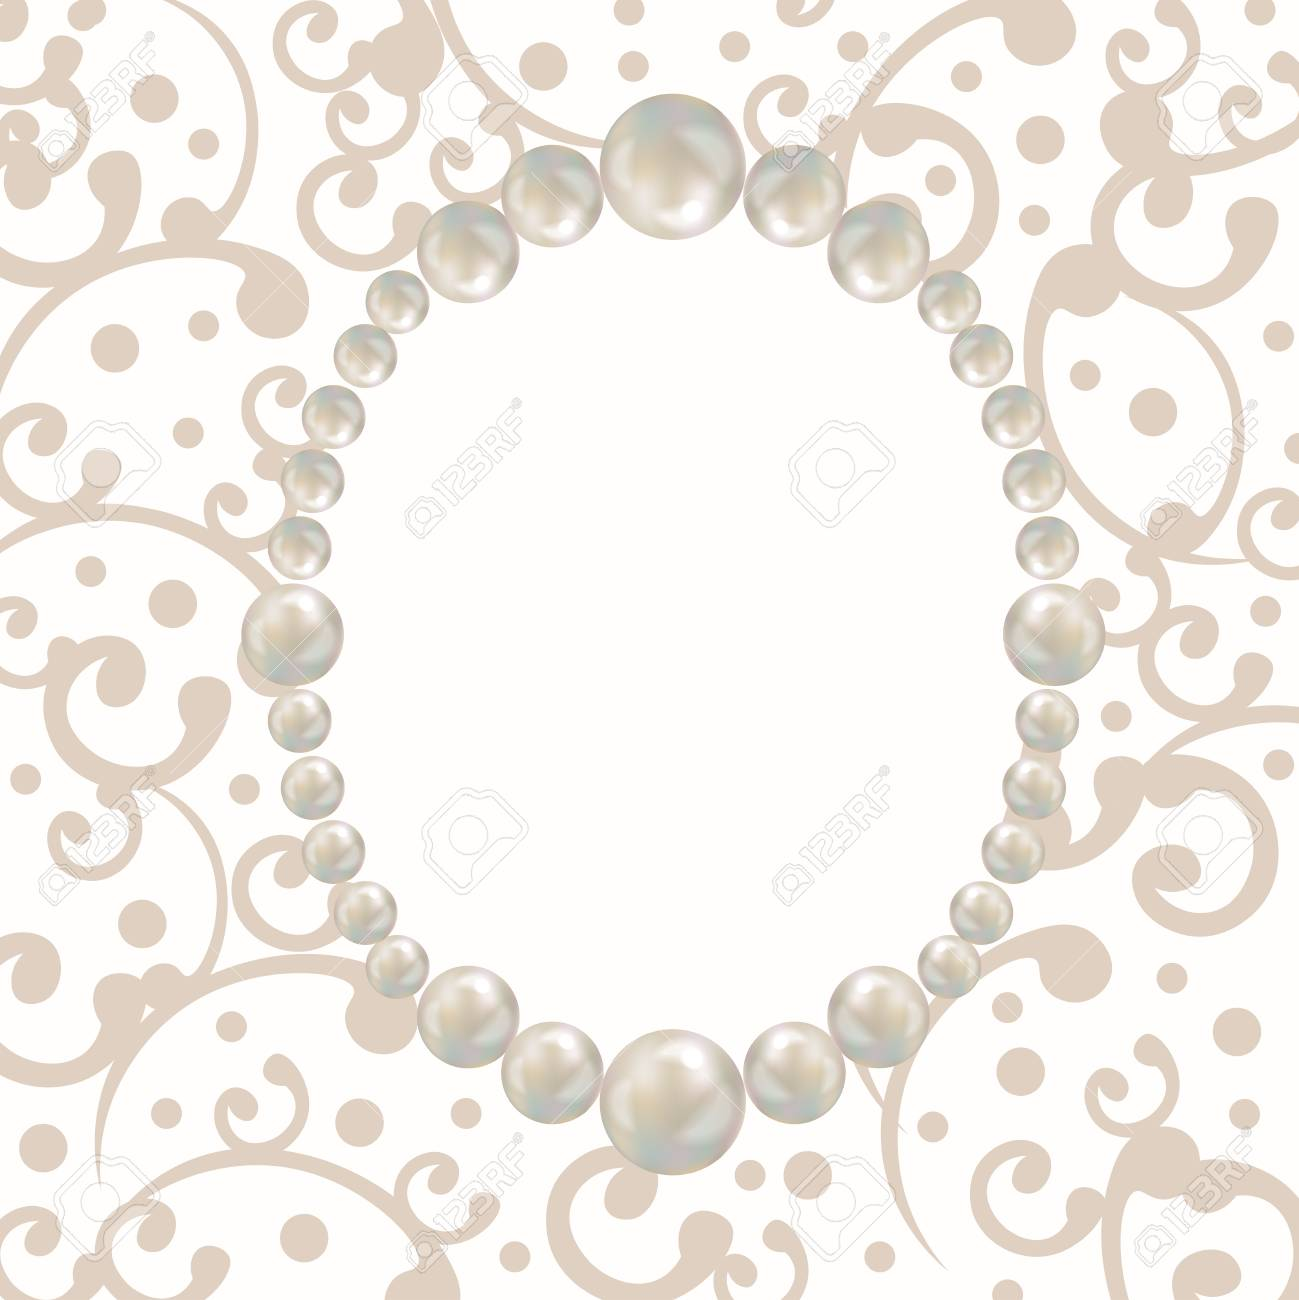 pearl frame retro design card template for greeting card